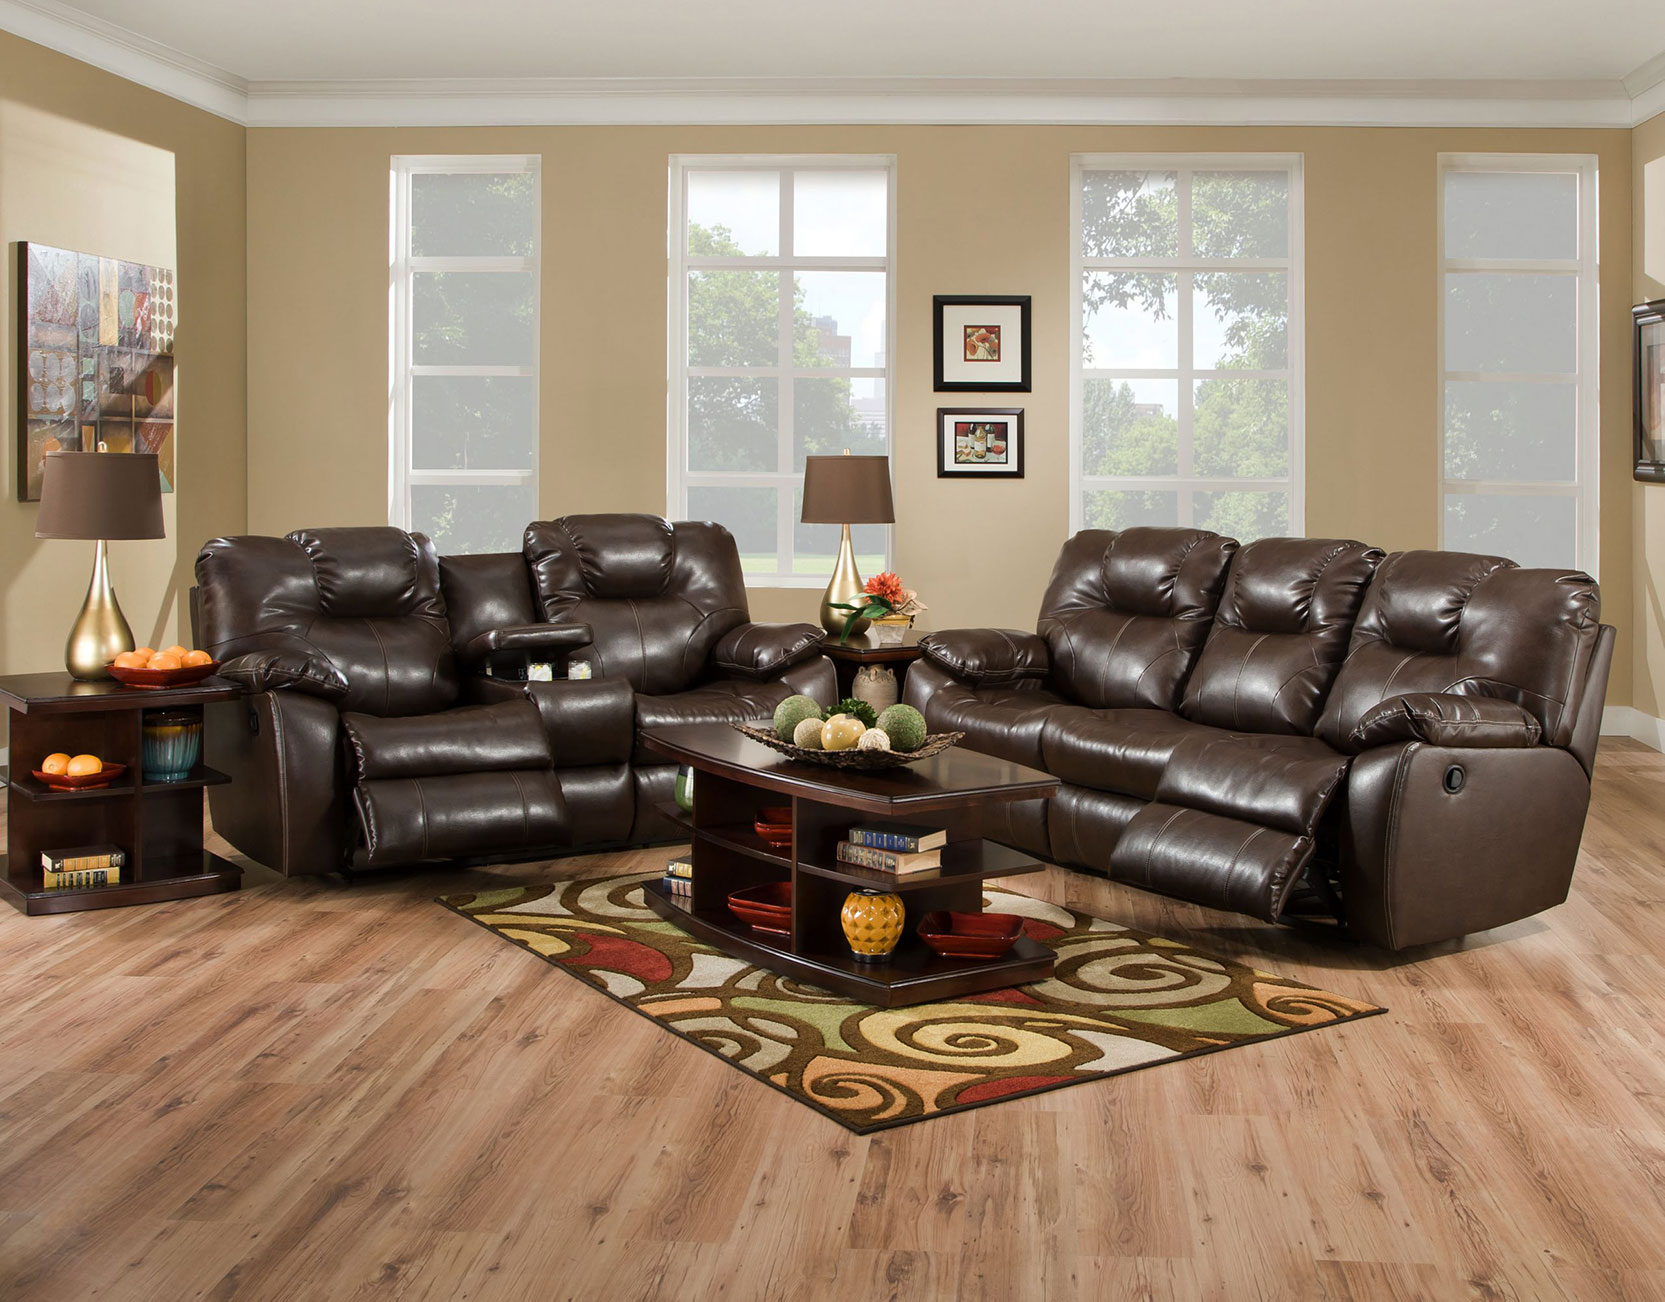 838-avalon-sofas-in-804-21-hide-out-coffee-rs-2-scaled_web